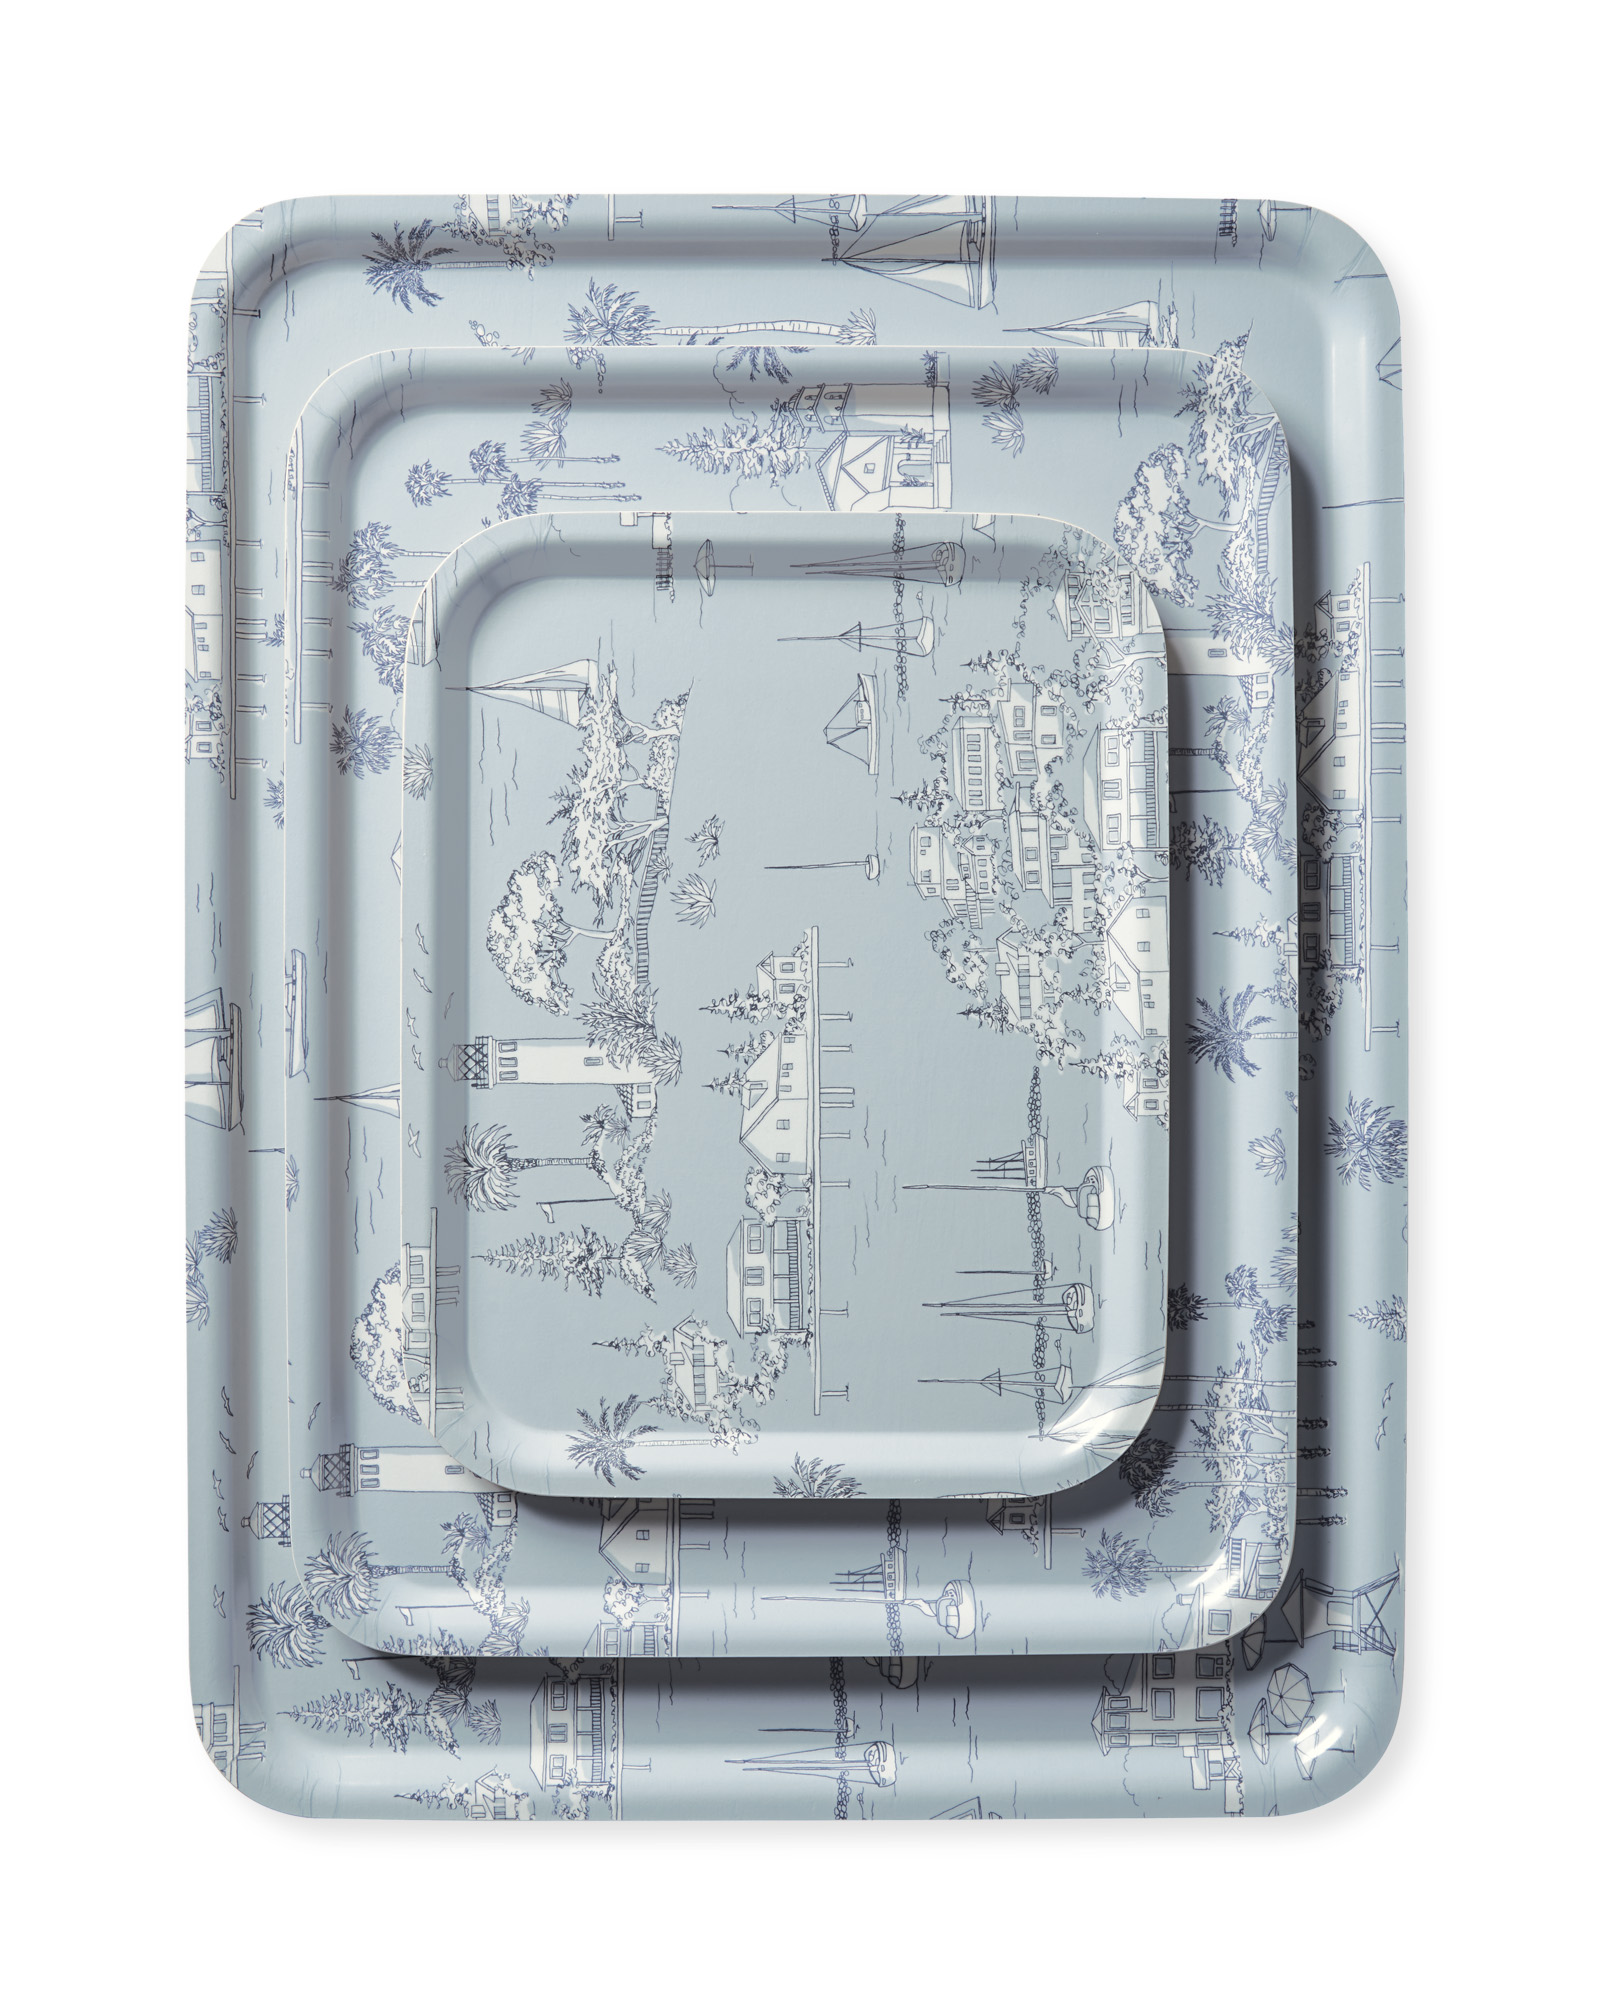 Westwind toile tray - Serena & Lily